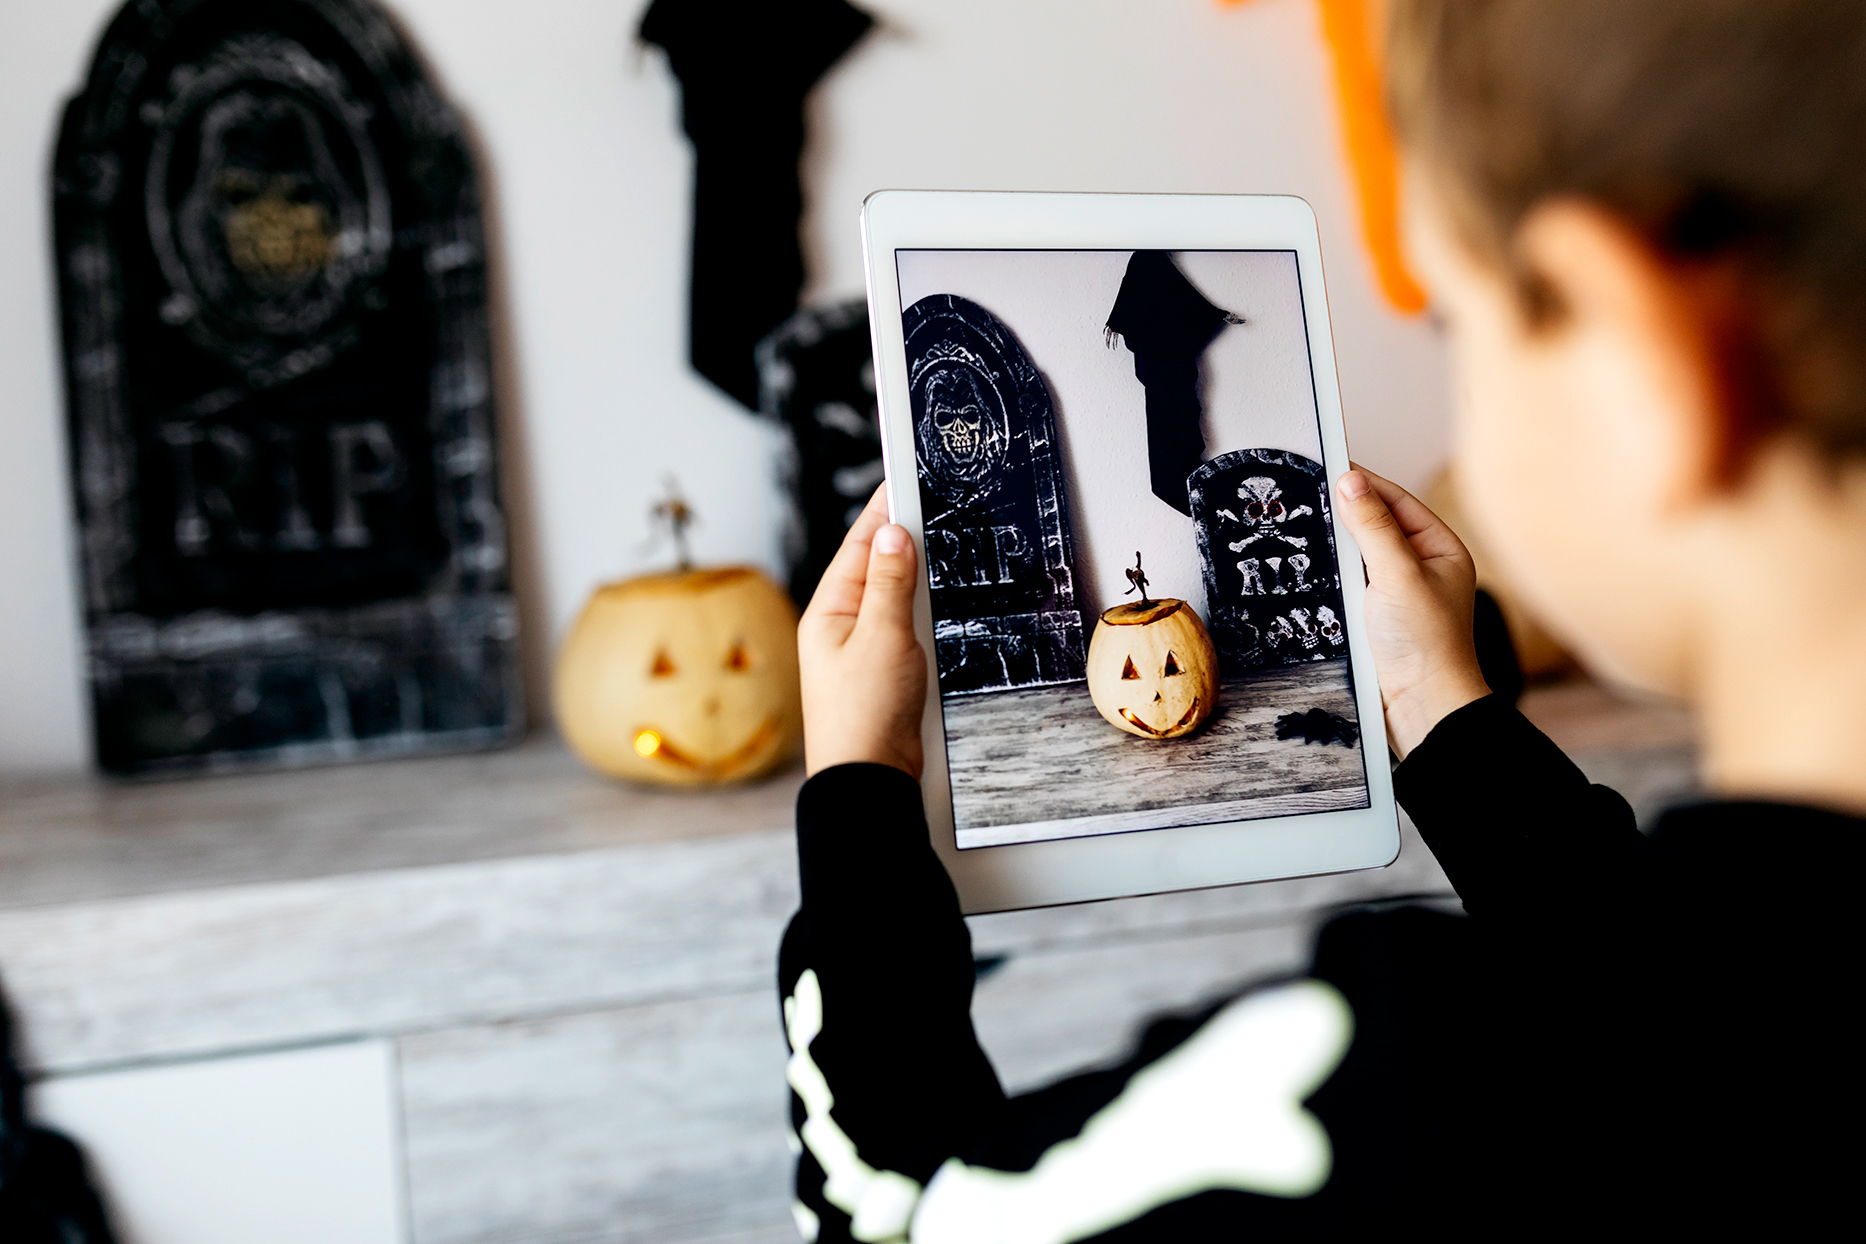 child watching Halloween content on tablet